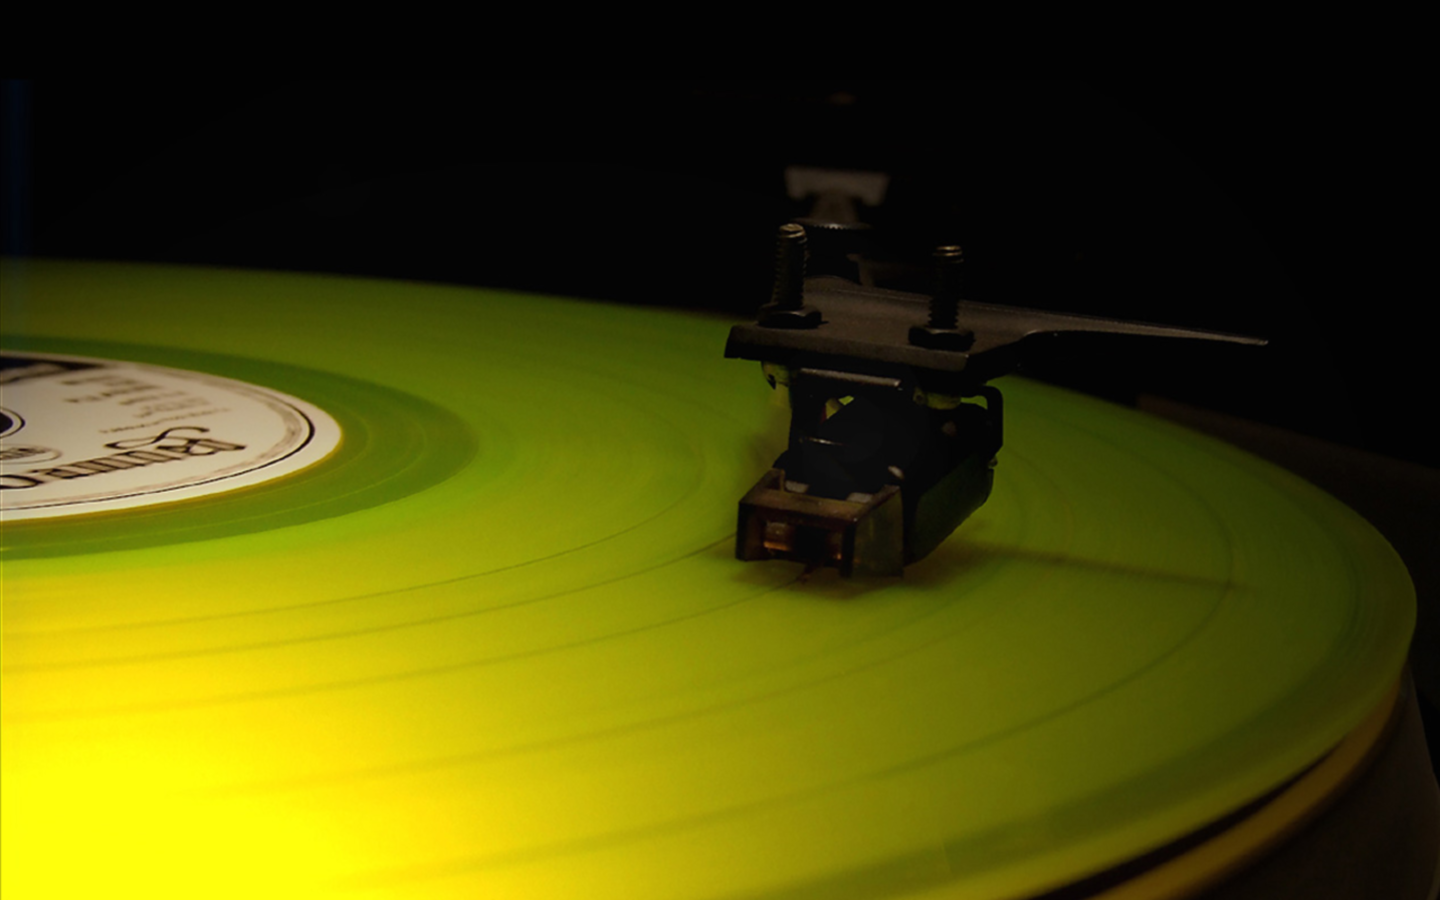 Turntable Record Player HD Wallpapers Download Wallpapers in HD 1440x900